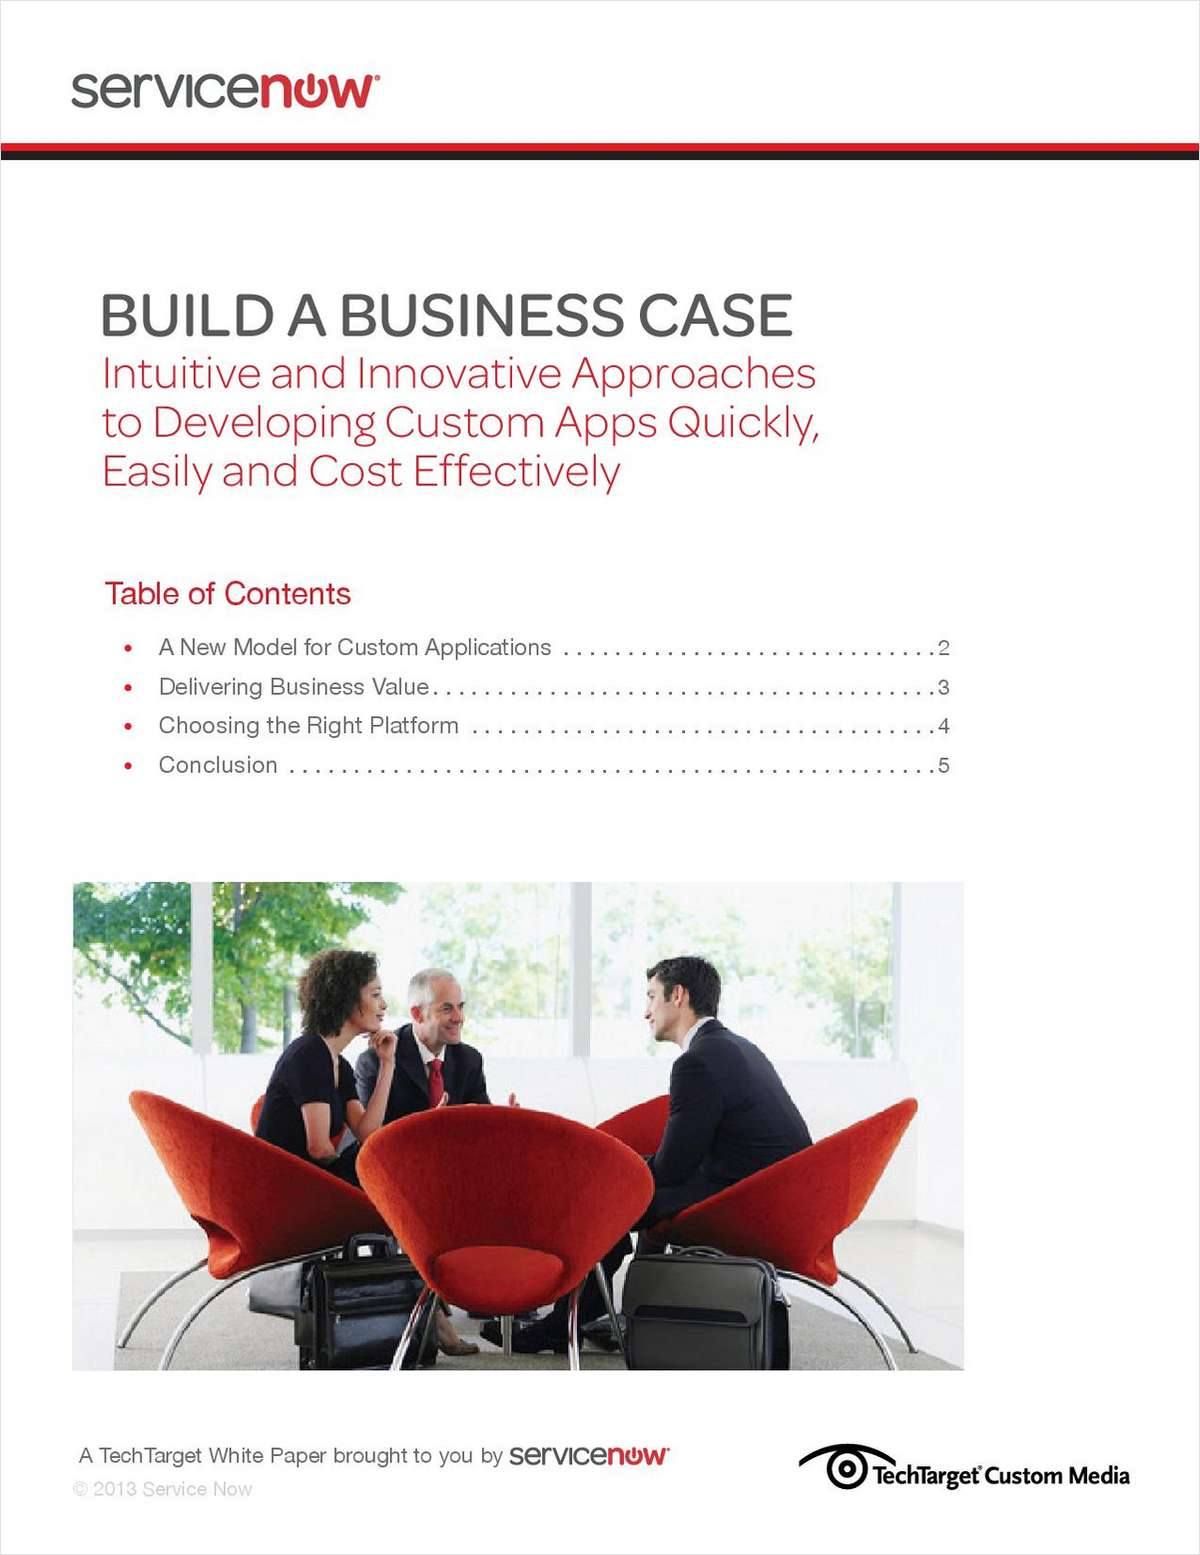 Build a Business Case: Developing Custom Apps